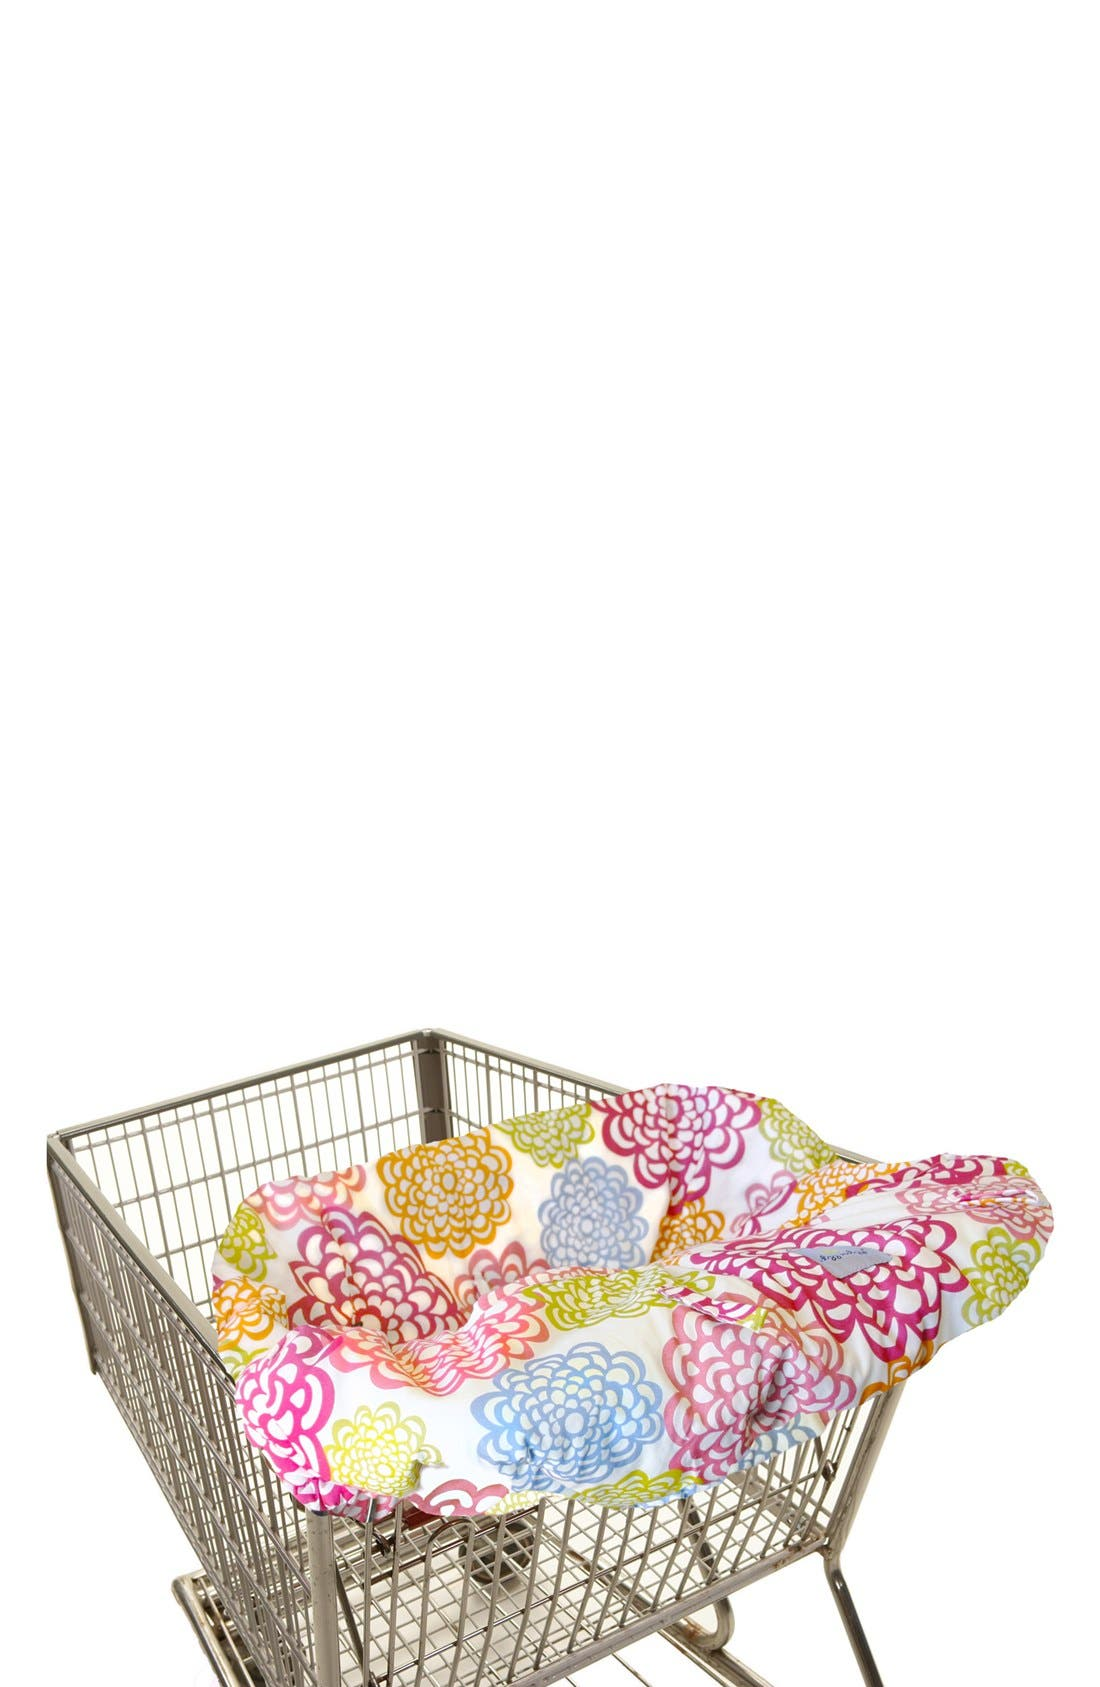 Alternate Image 1 Selected - Itzy Ritzy Shopping Cart/Highchair Cover